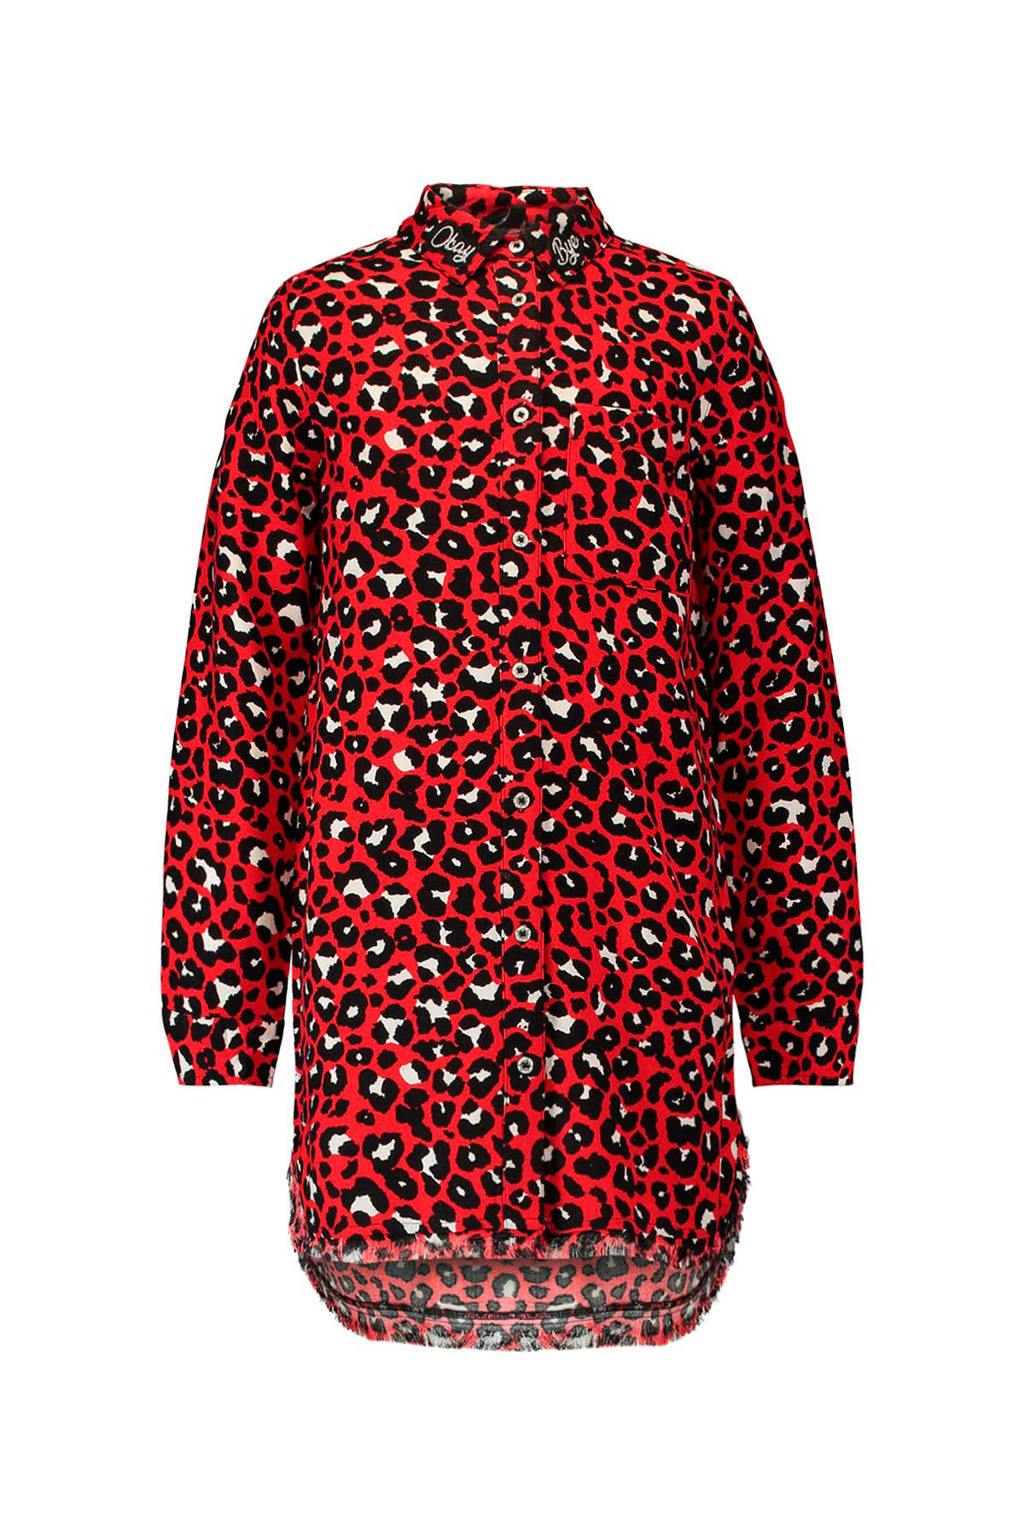 CoolCat blouse met all over panterprint rood, Rood